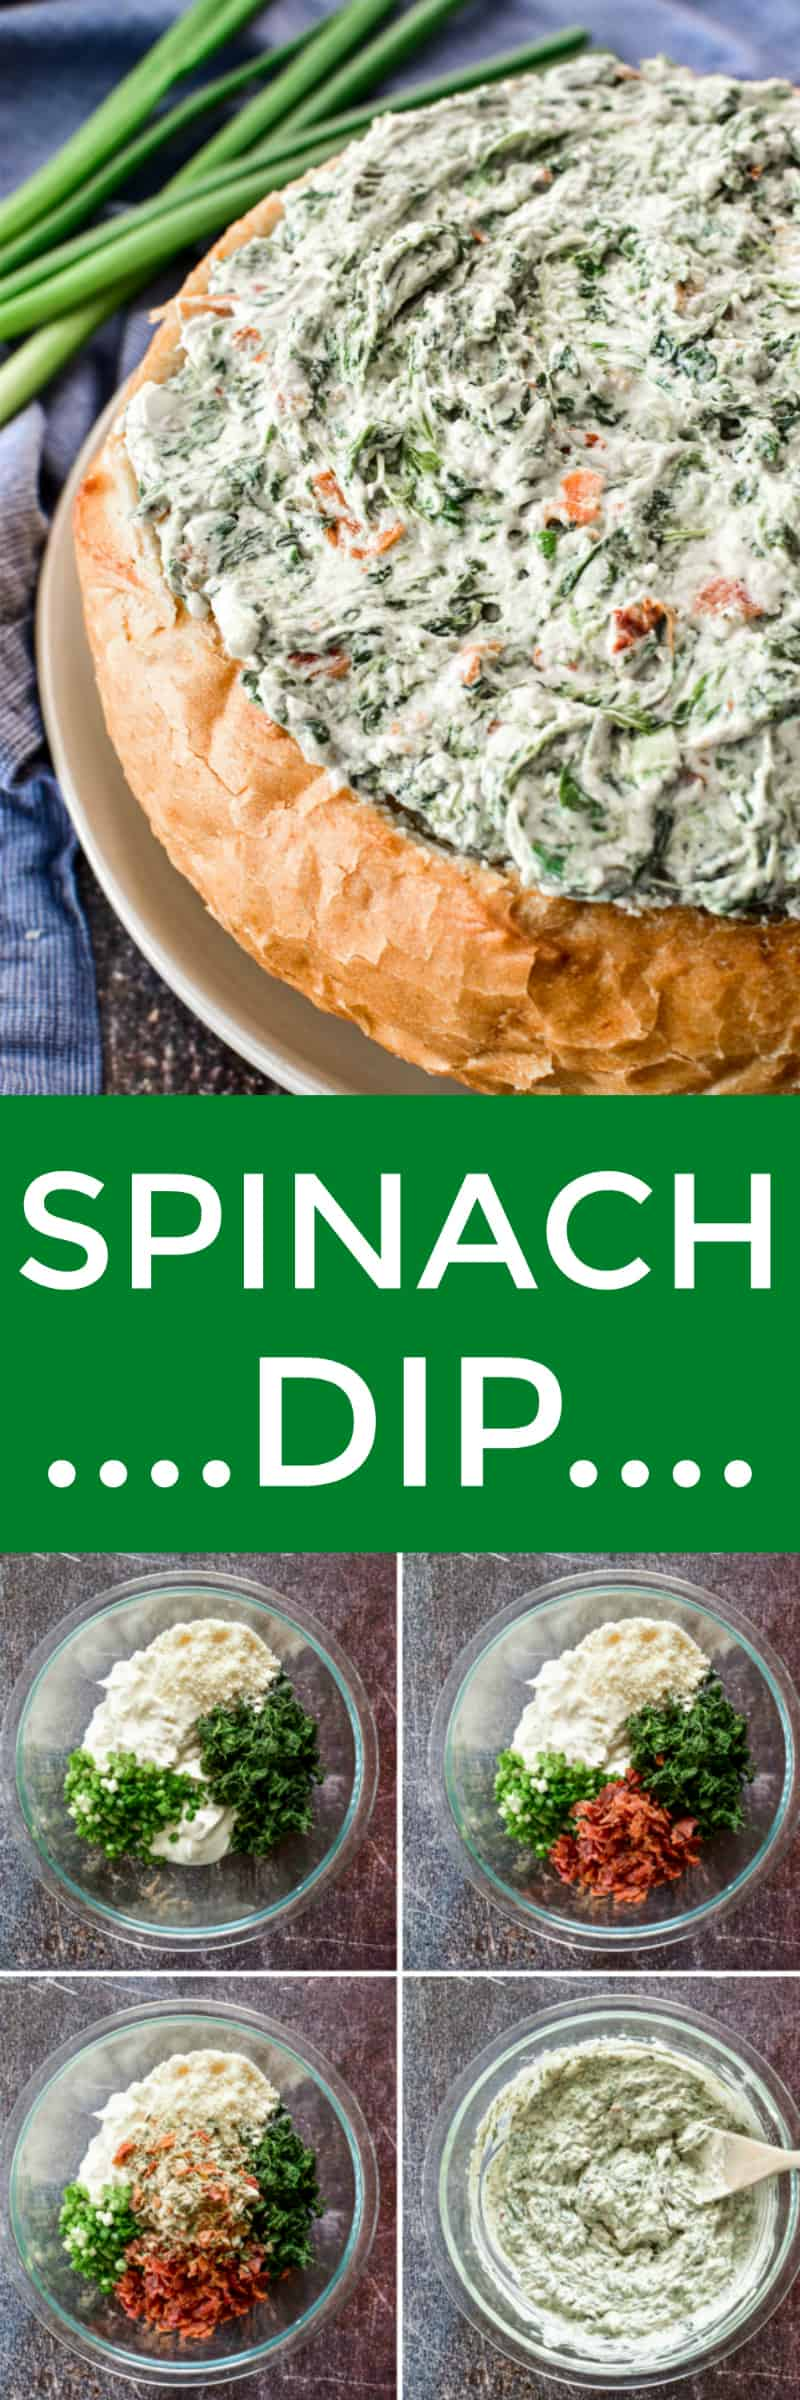 Spinach Dip collage